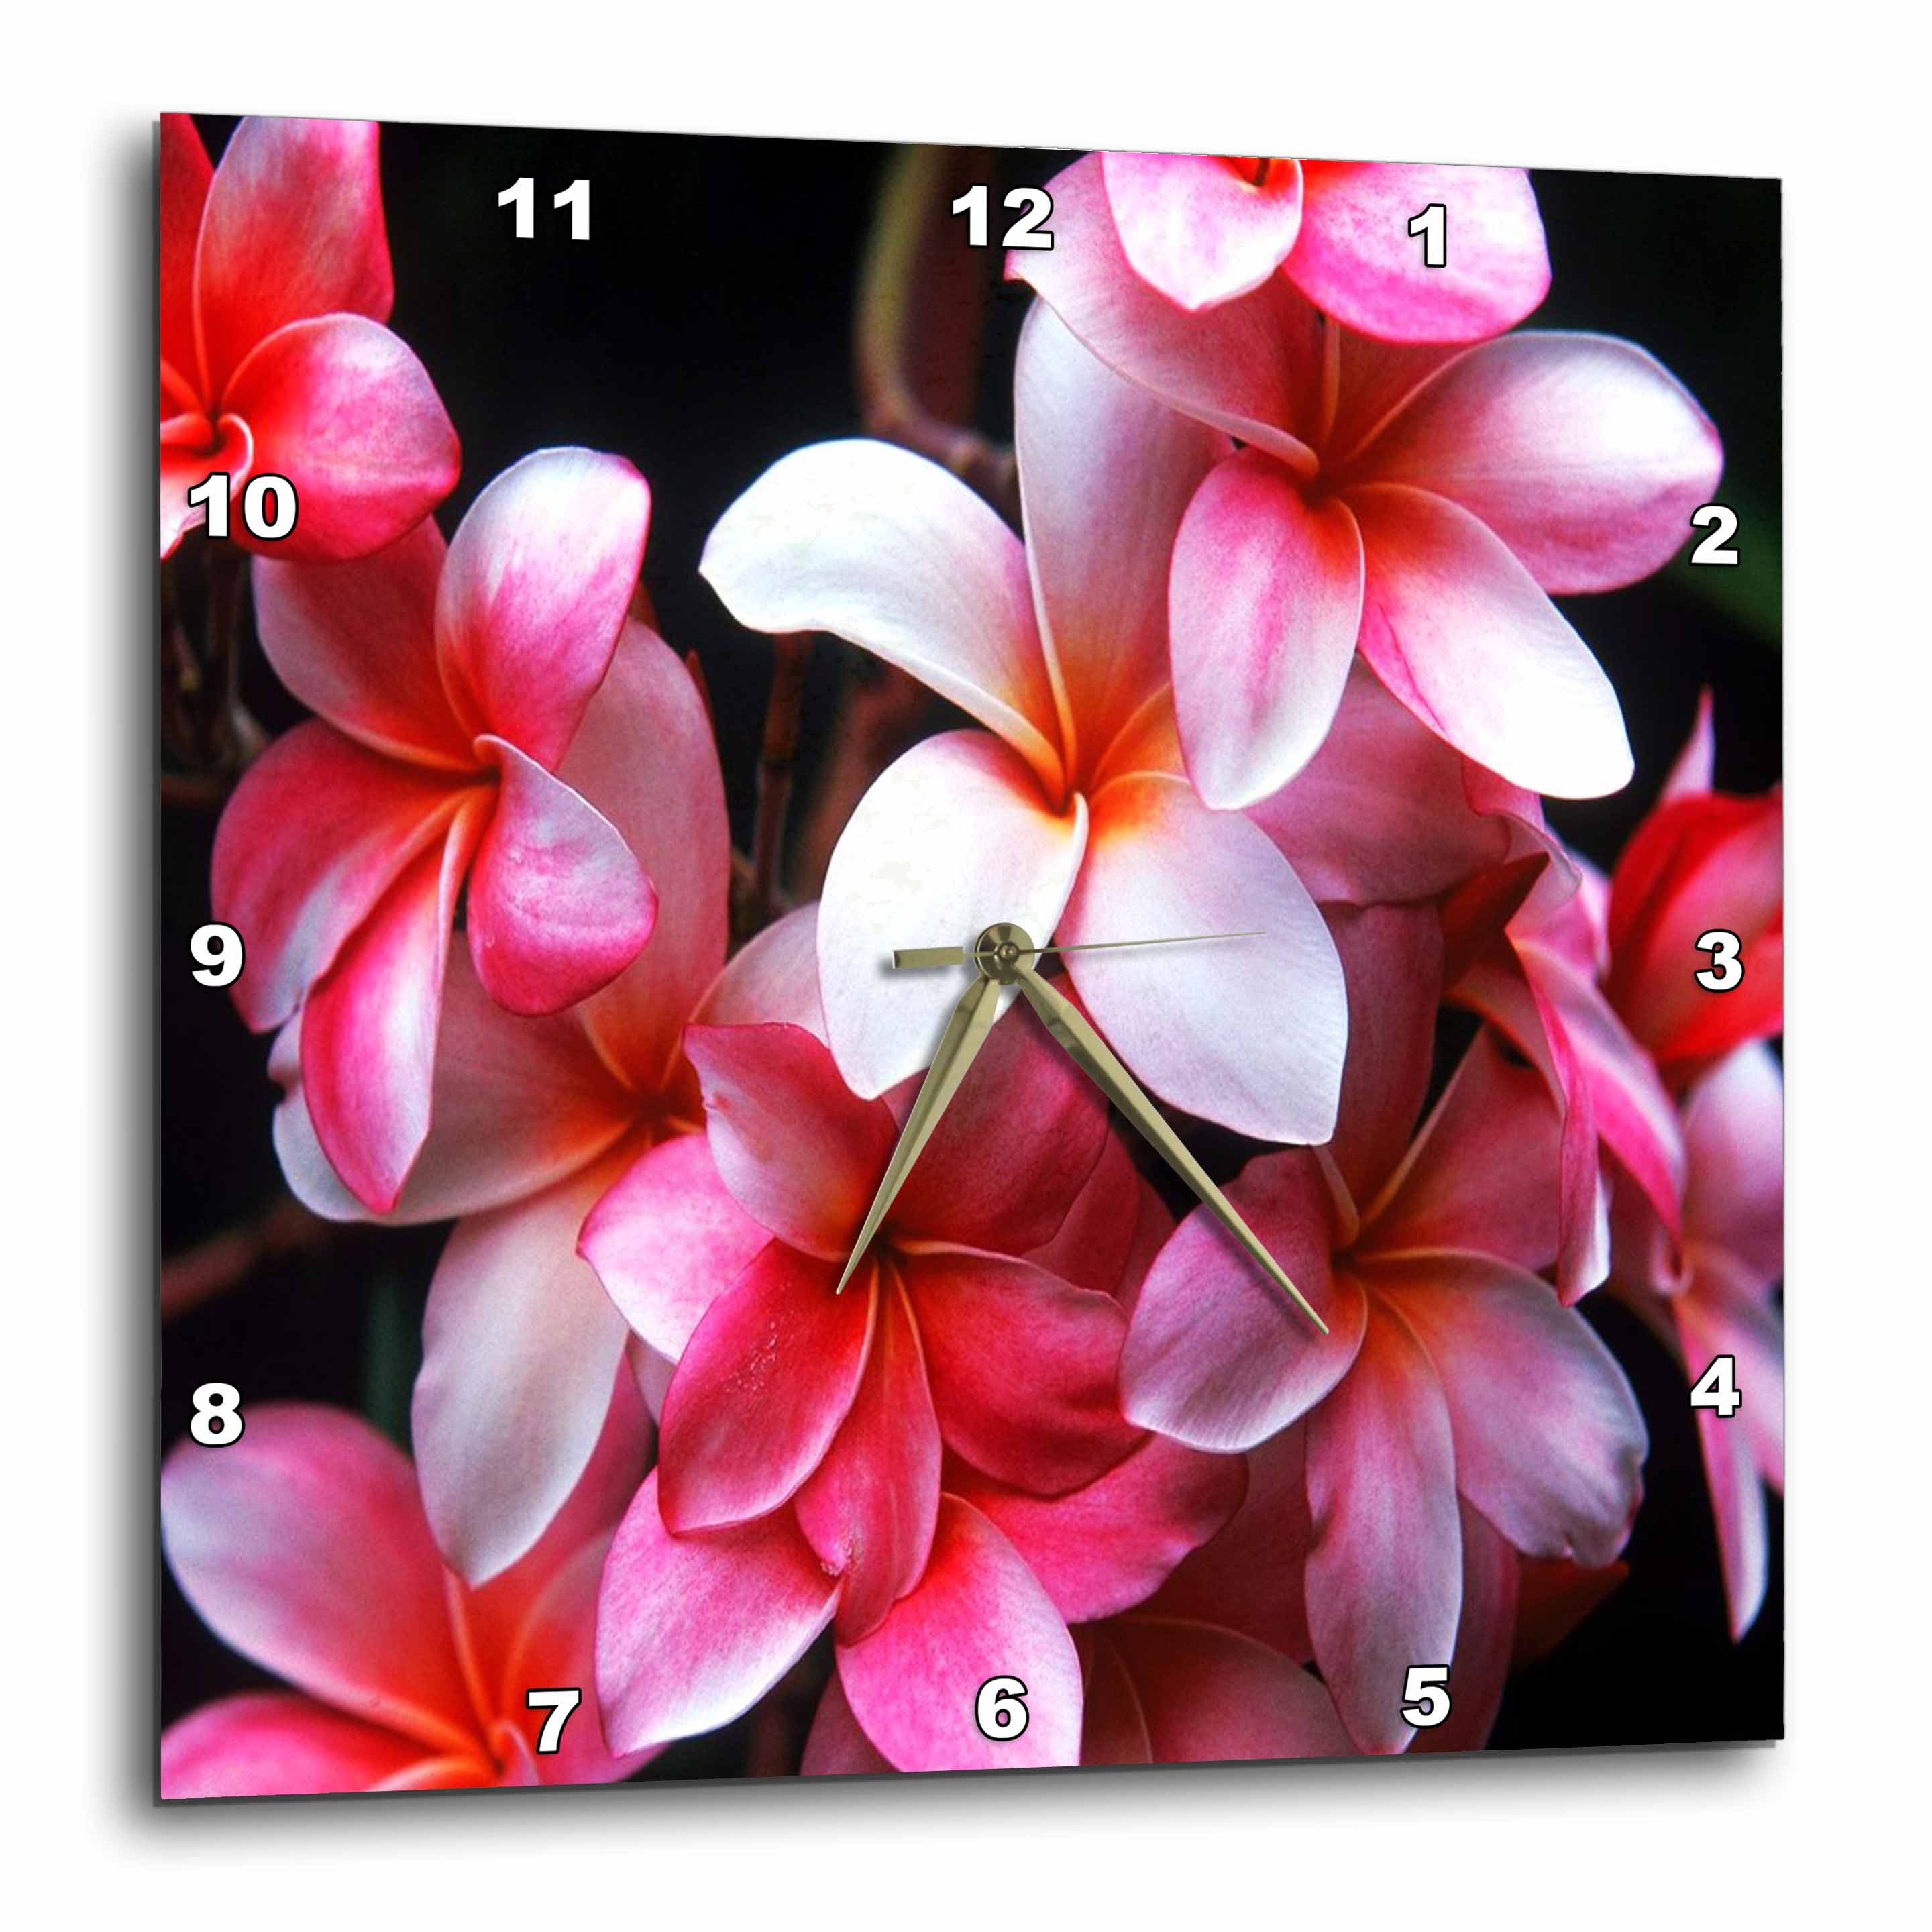 3dRose Hawaiian Fuchsia Colored Plumeria Flowers, Wall Clock, 15 by 15-inch